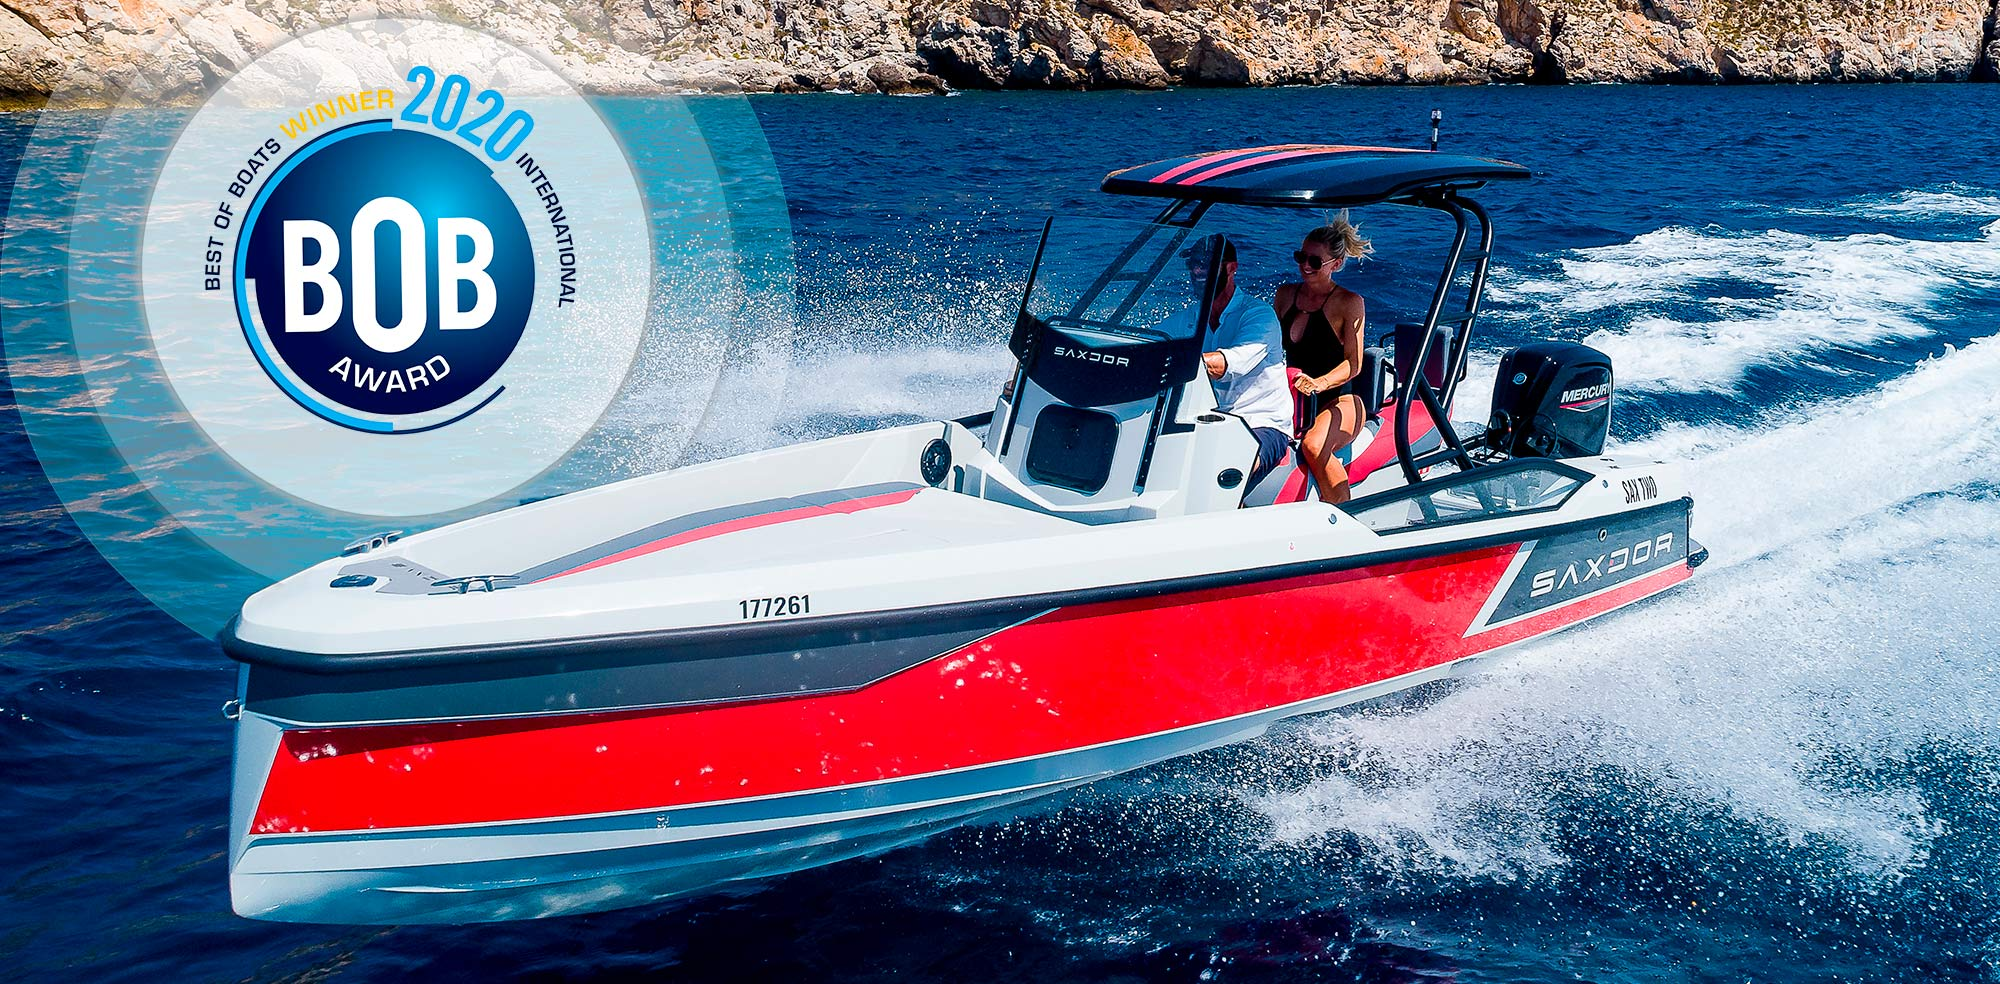 Saxdor Yachts -  Front page slide 0 – S200 BOB